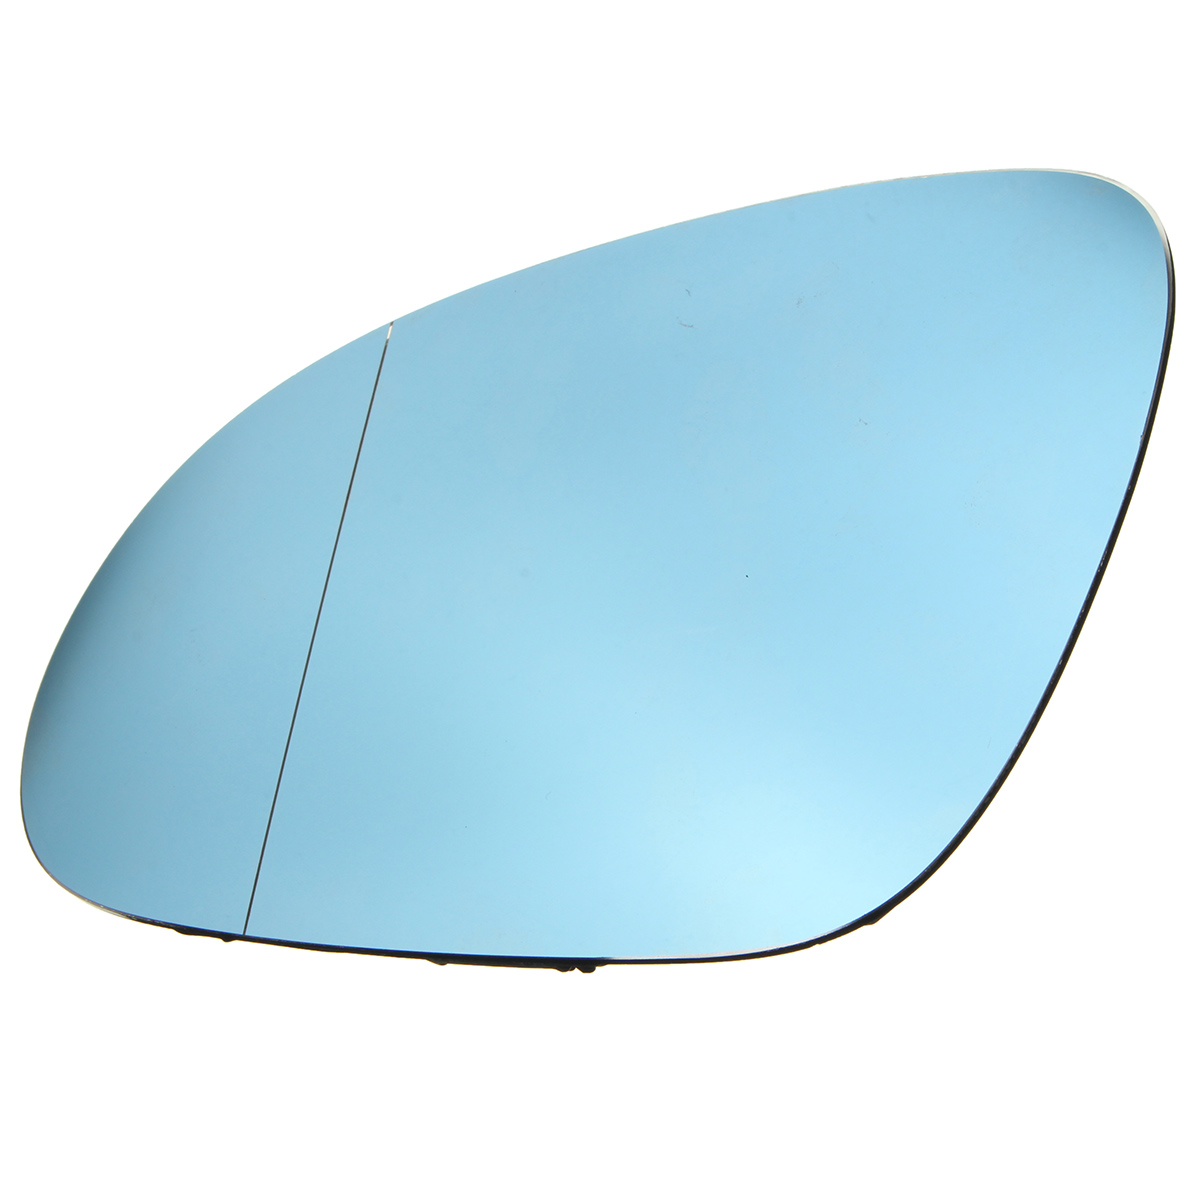 Golf Gti Wing Mirror Glass